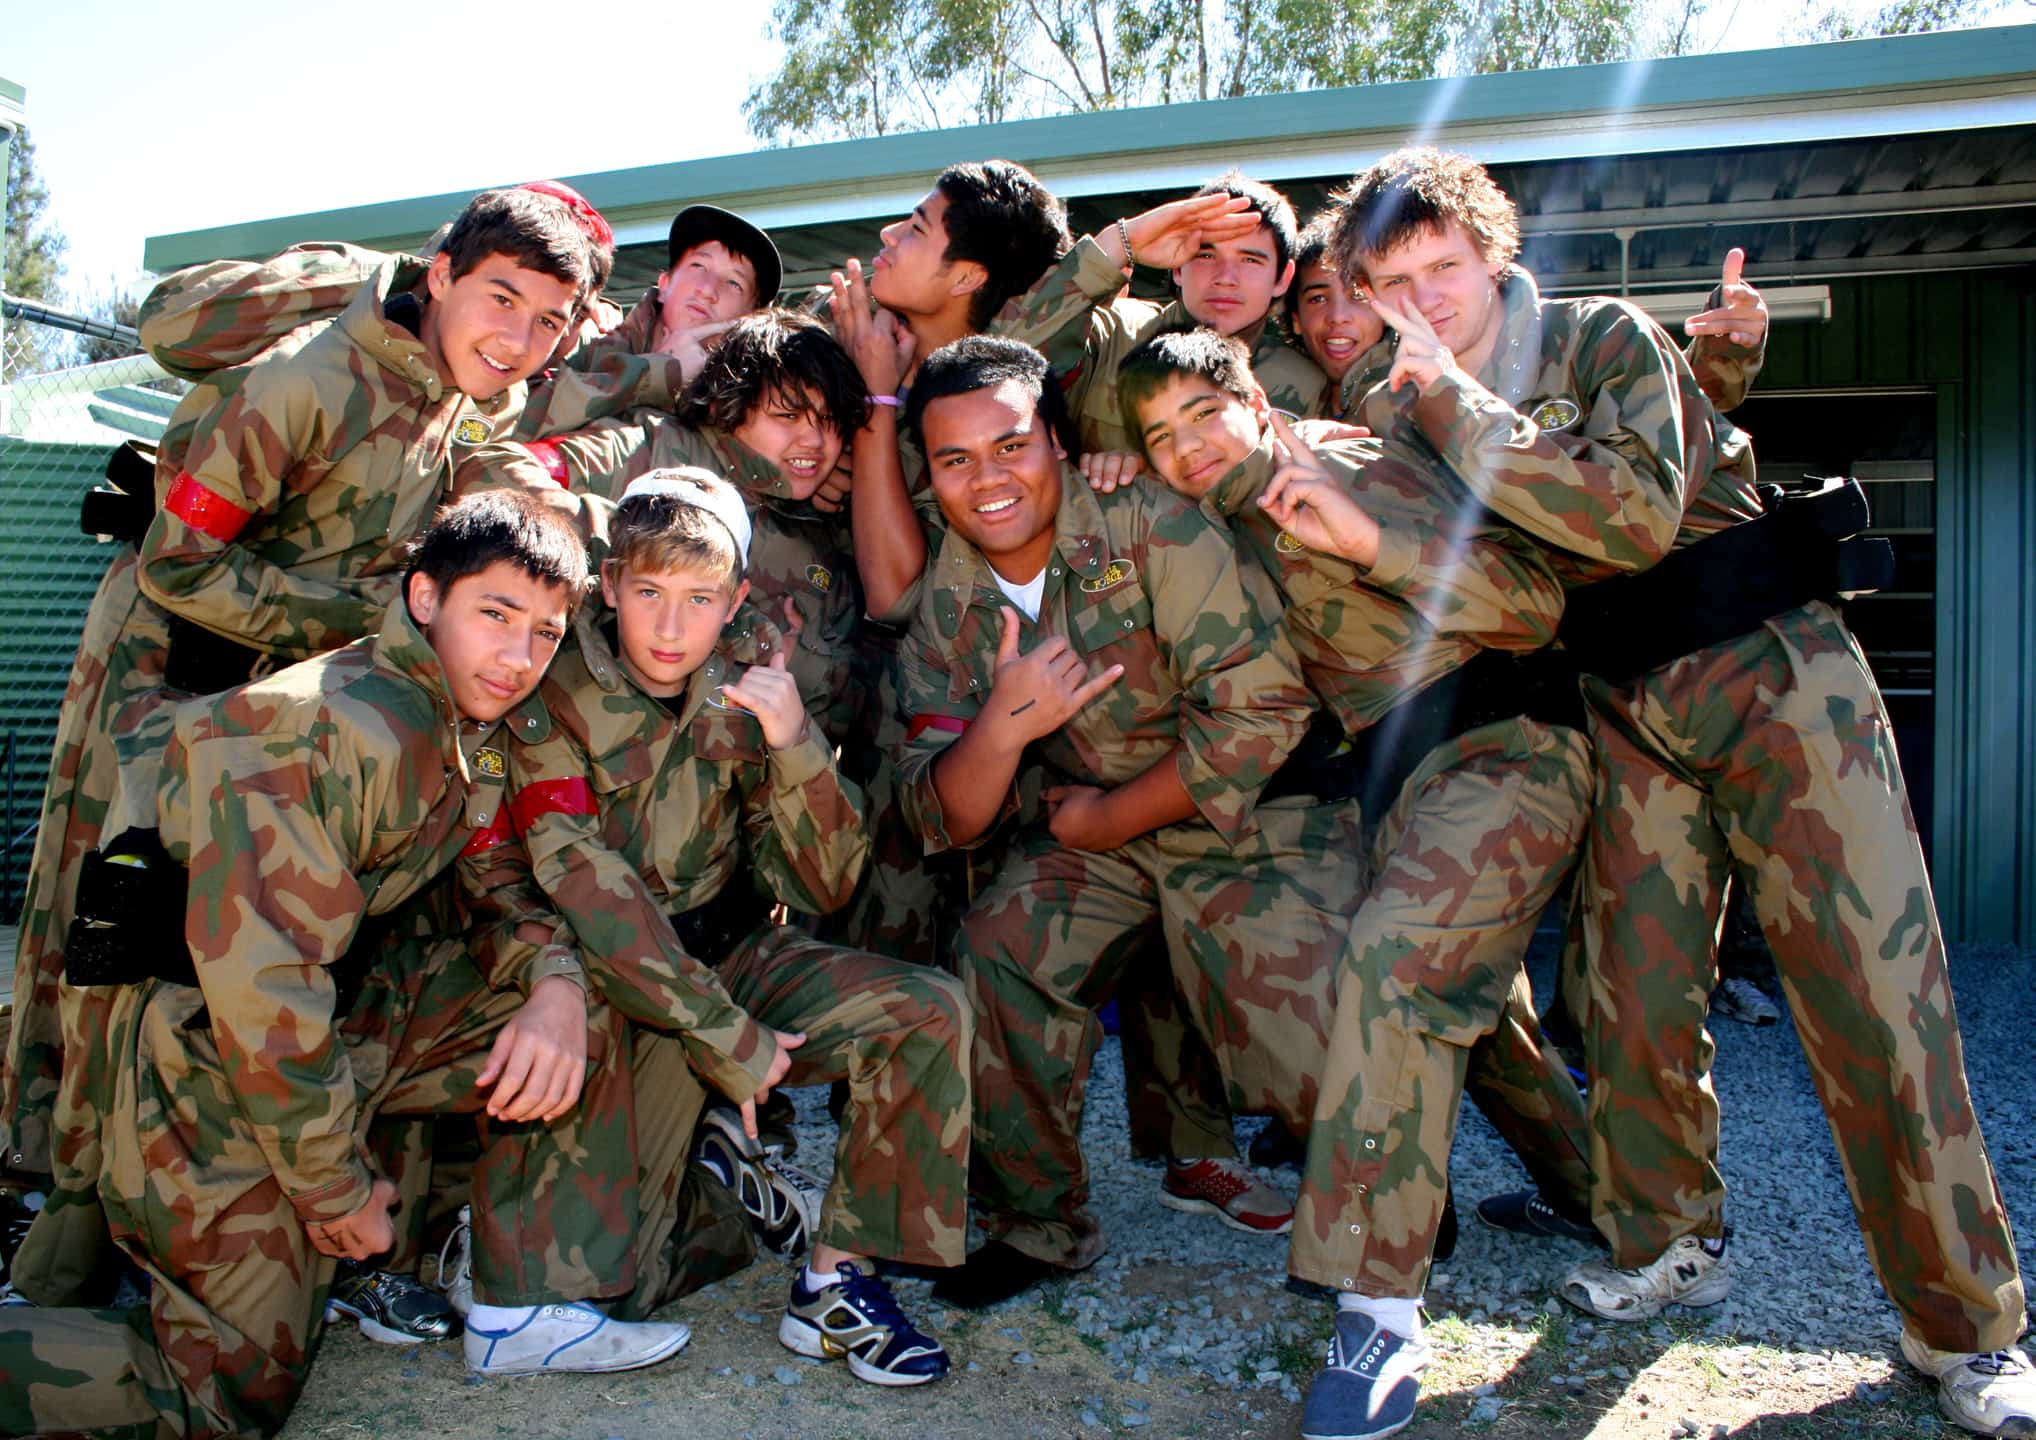 Boys Posing In Delta Force Paintball Camouflage Uniform